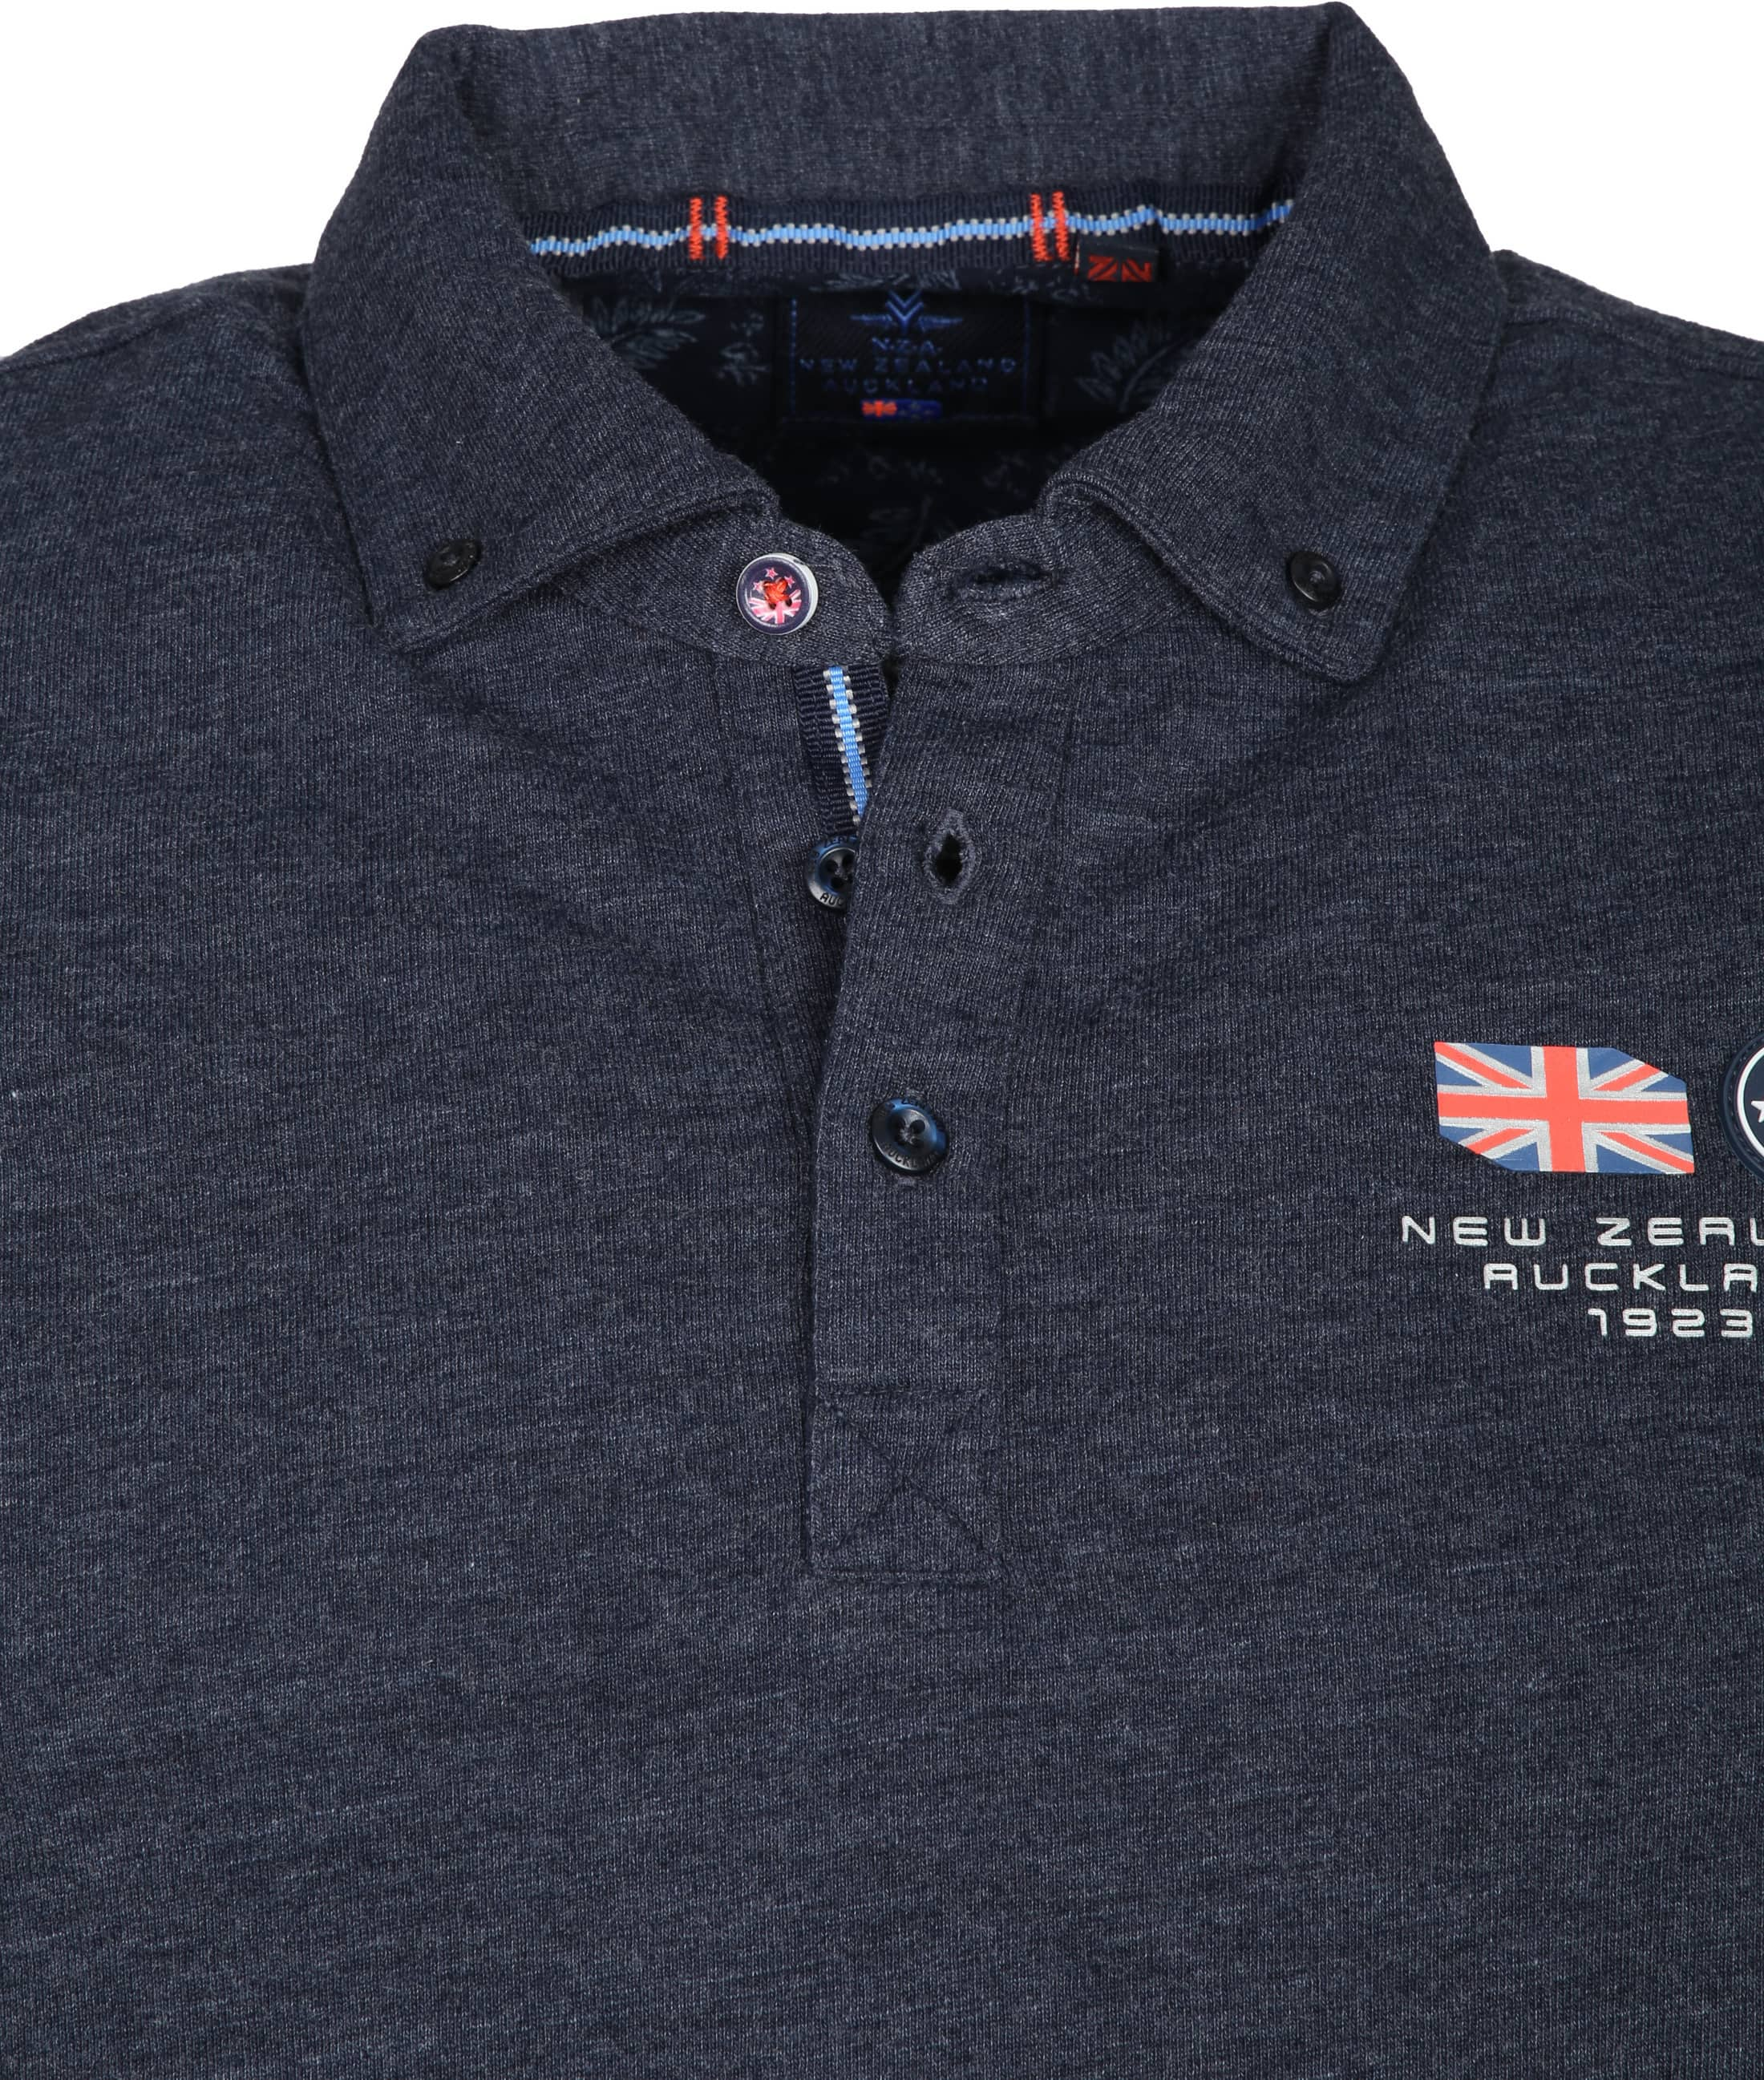 NZA Polo LS Marchant Navy foto 1